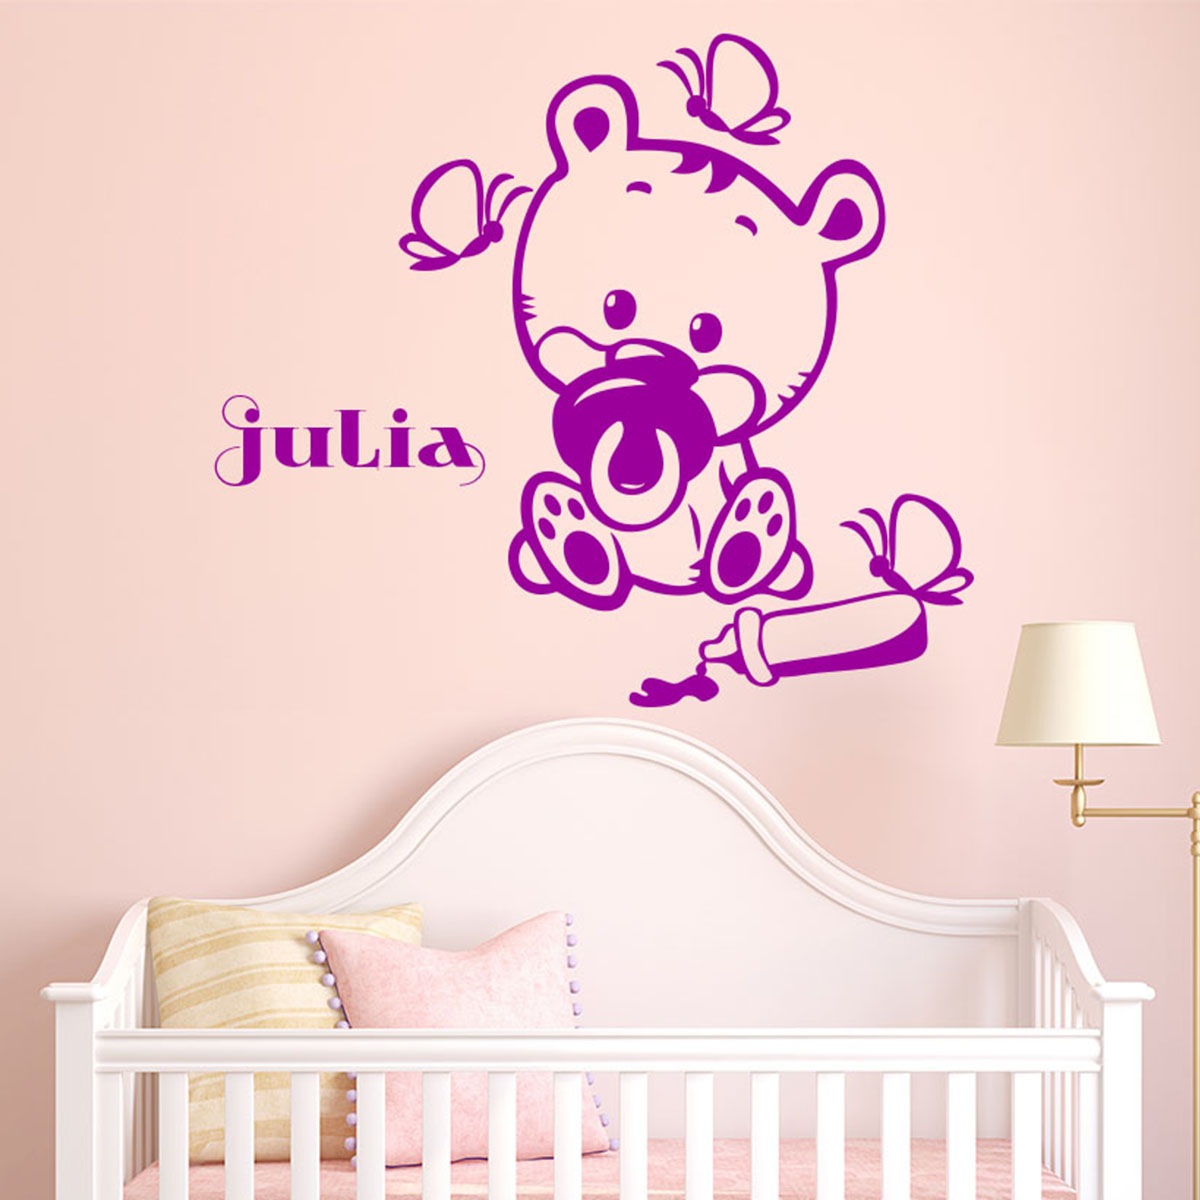 Sticker pr nom personnalis b b ourson texte for Stickers ourson chambre bebe